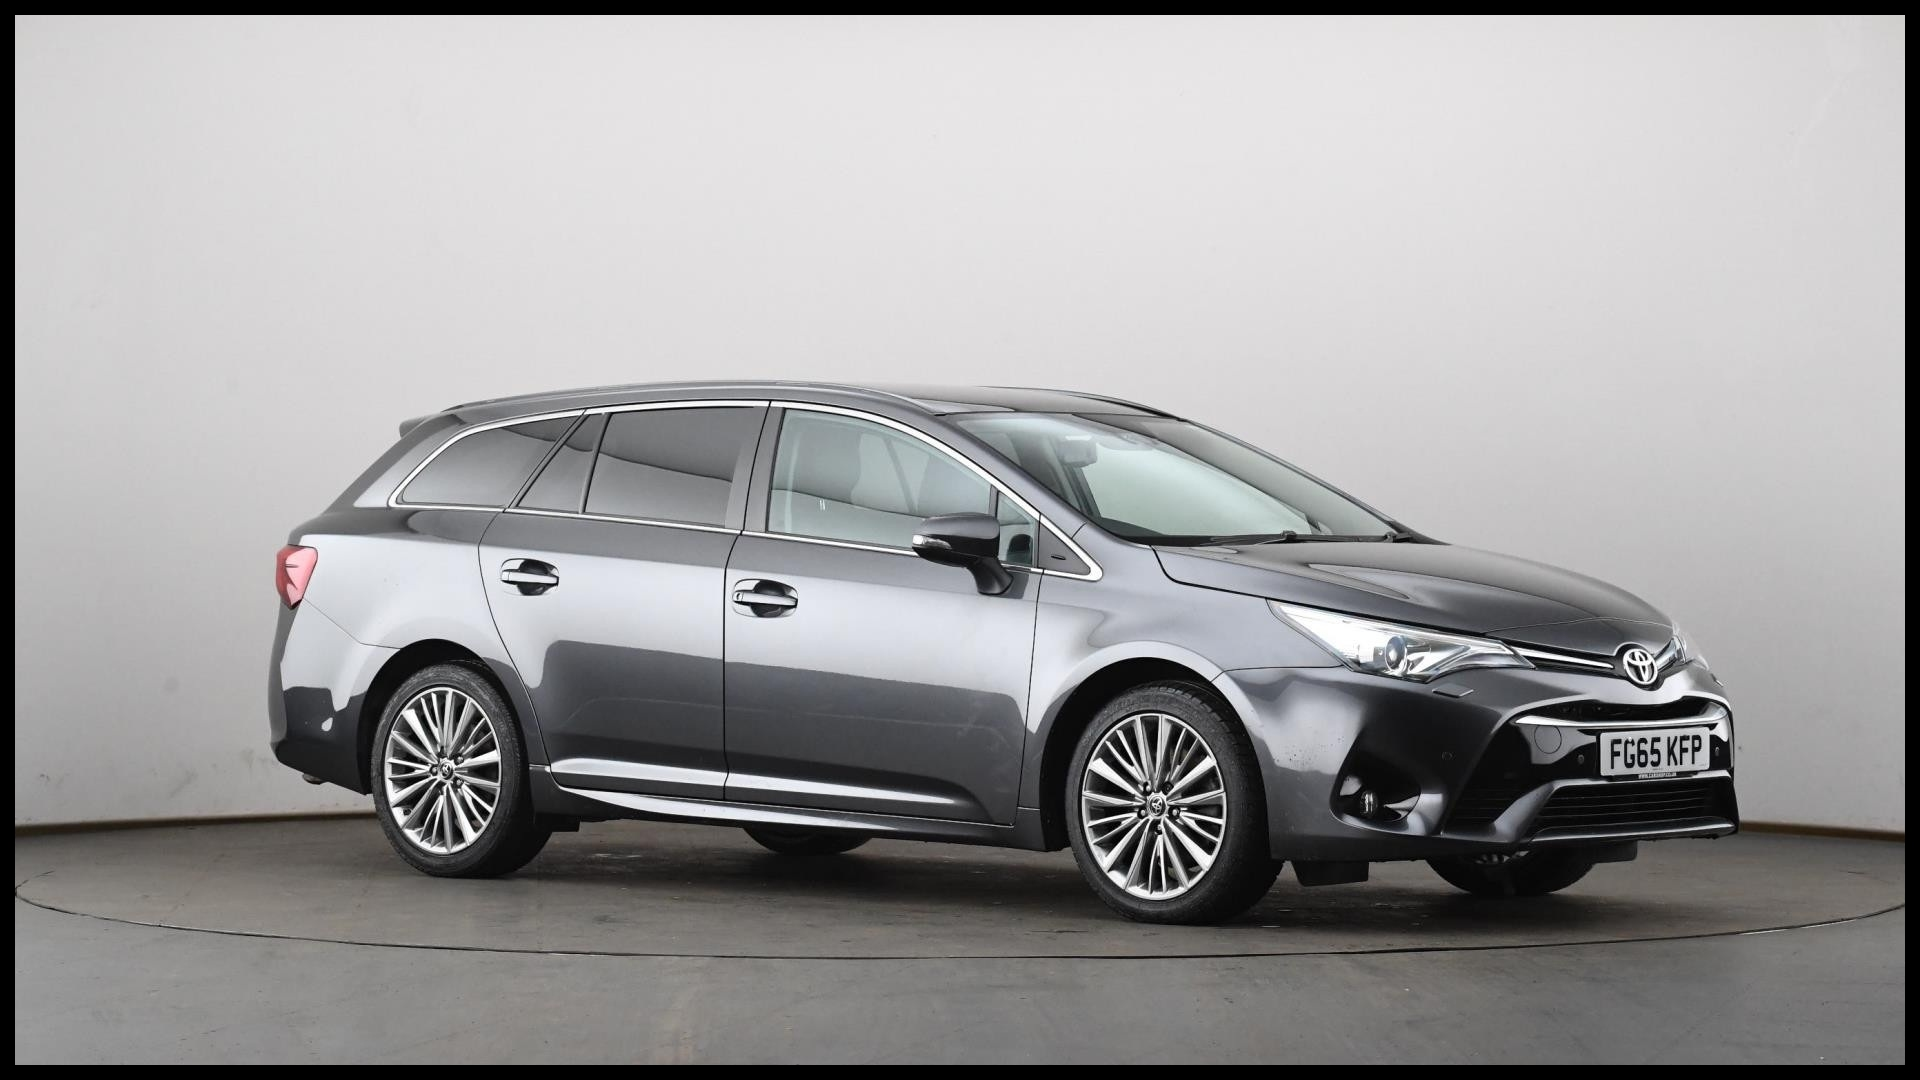 Toyota Camry New 2018 New Review 2007 toyota Camry Review top toyota Camry 2018 toyota Grey